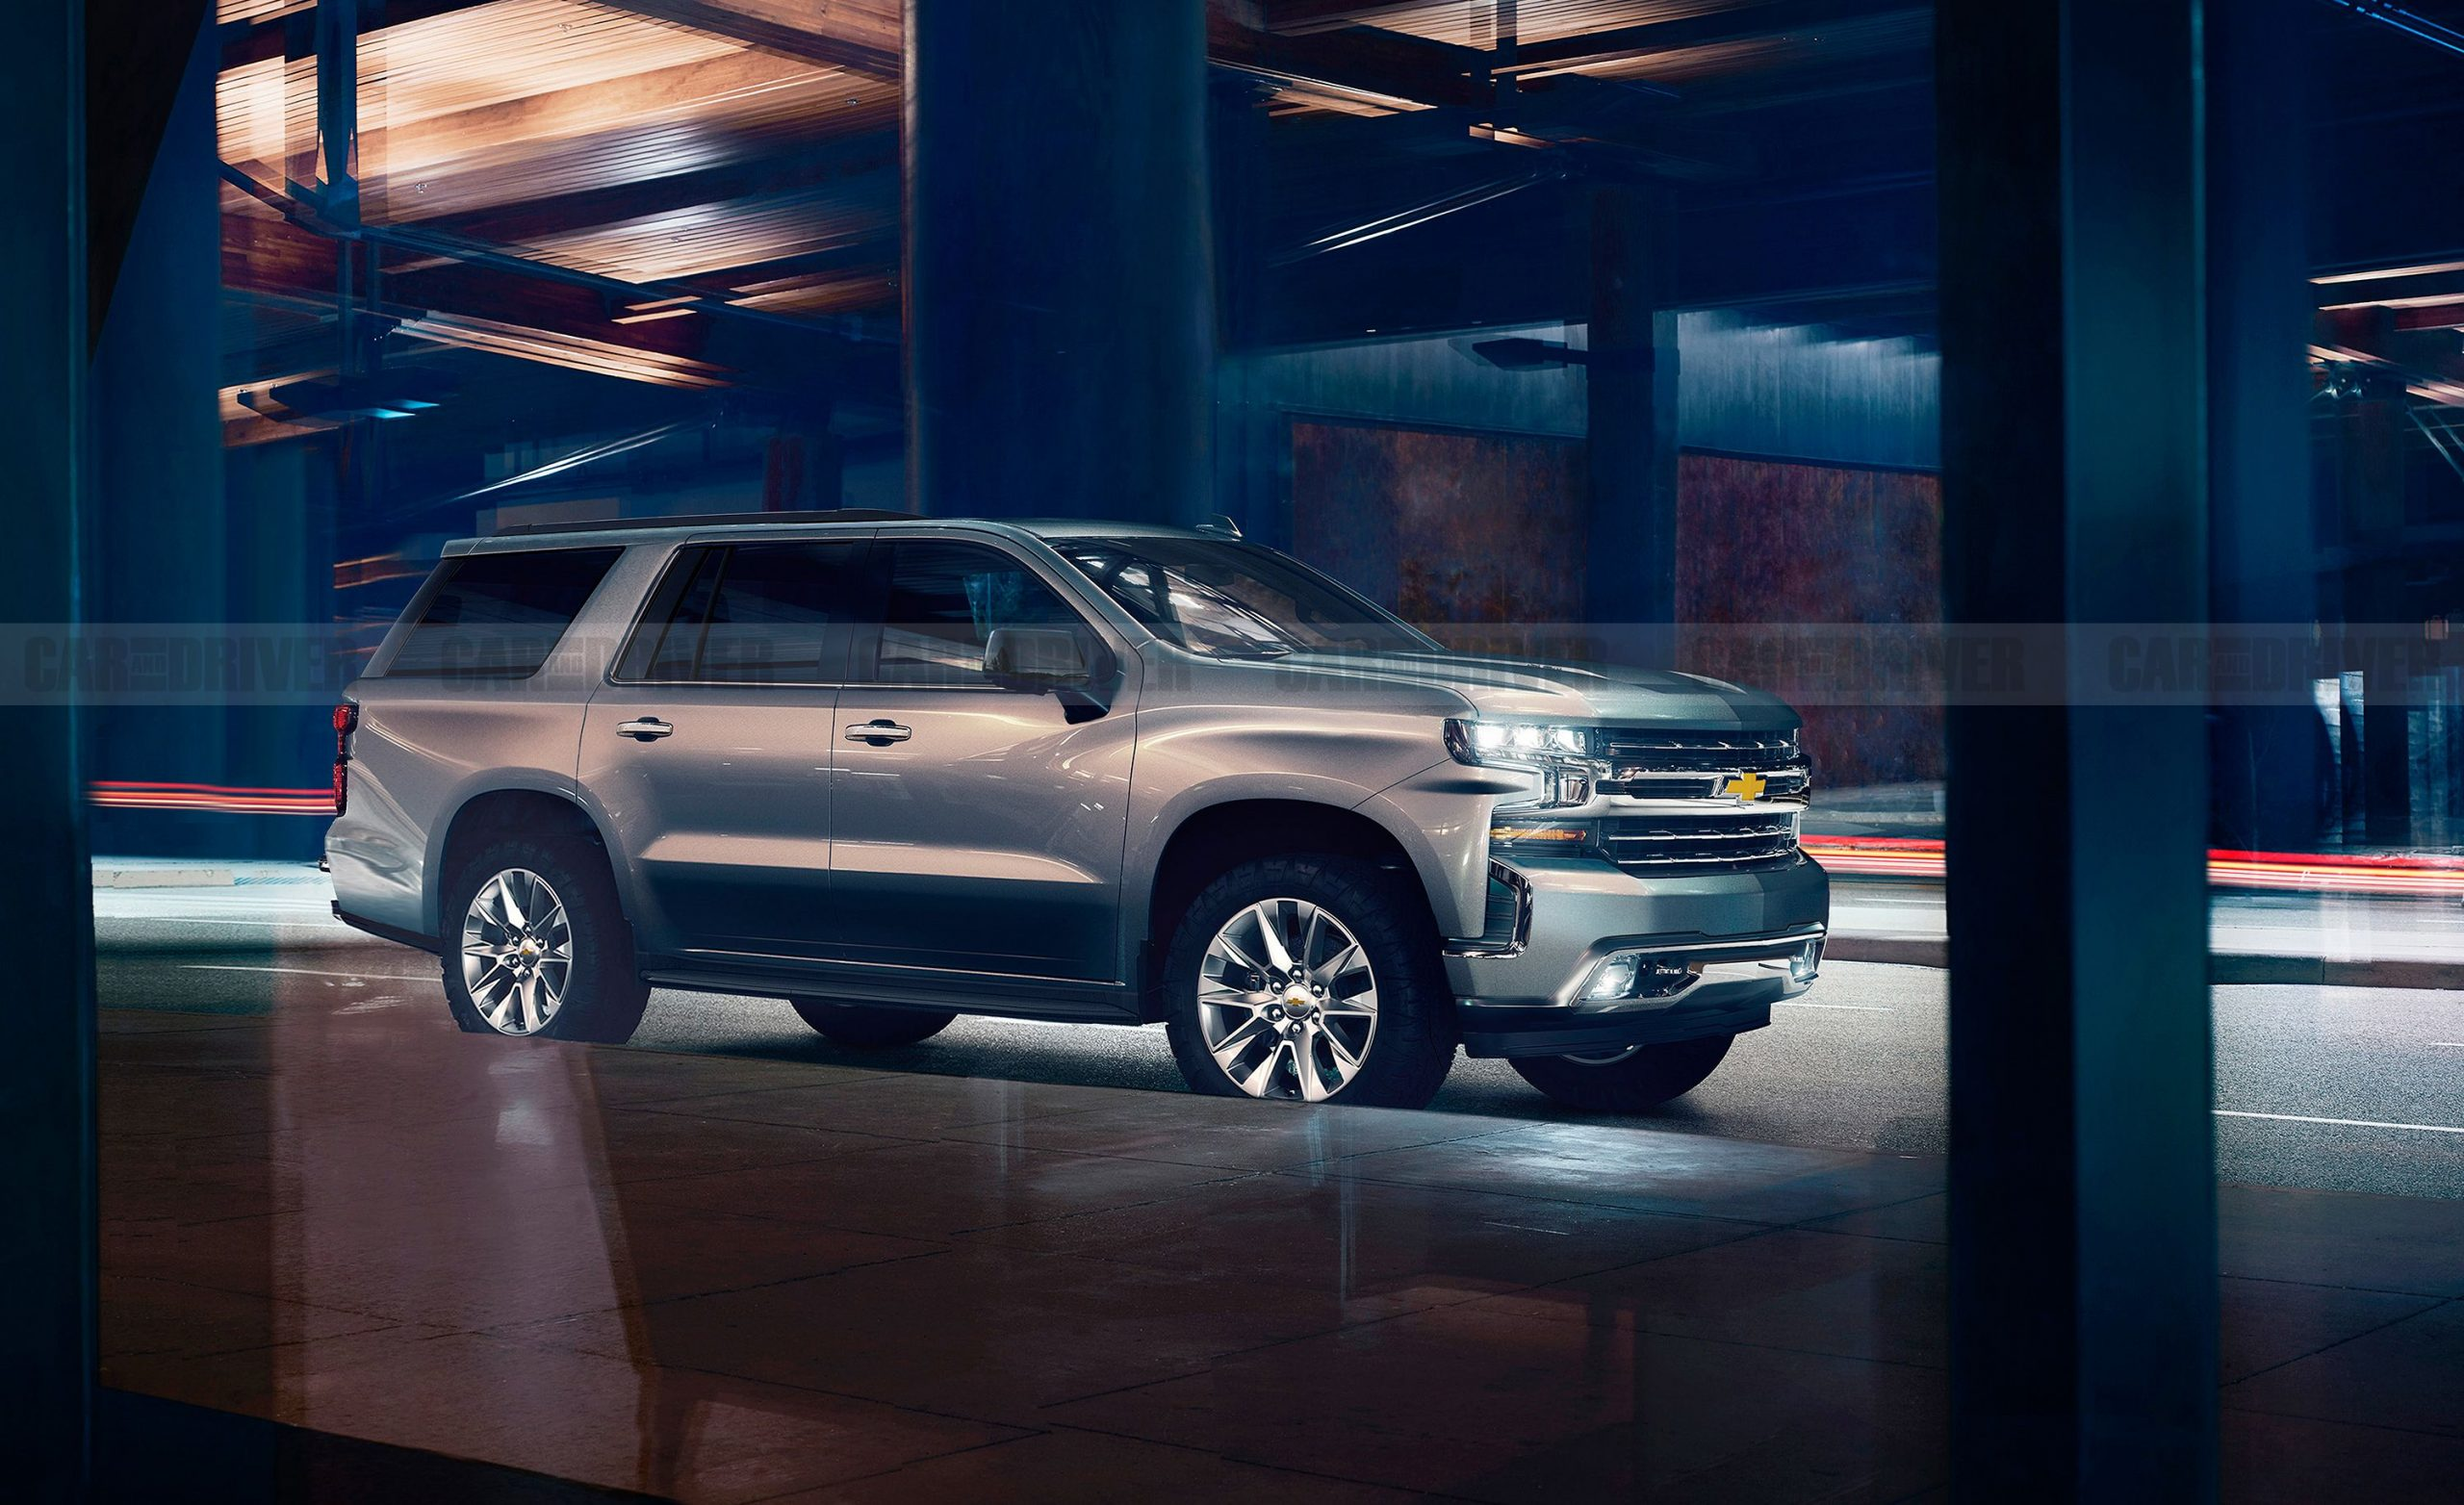 2021 Chevrolet Tahoe – Future Full-Size Suv 2022 Chevy Tahoe Brochure, Base Model, Cargo Space